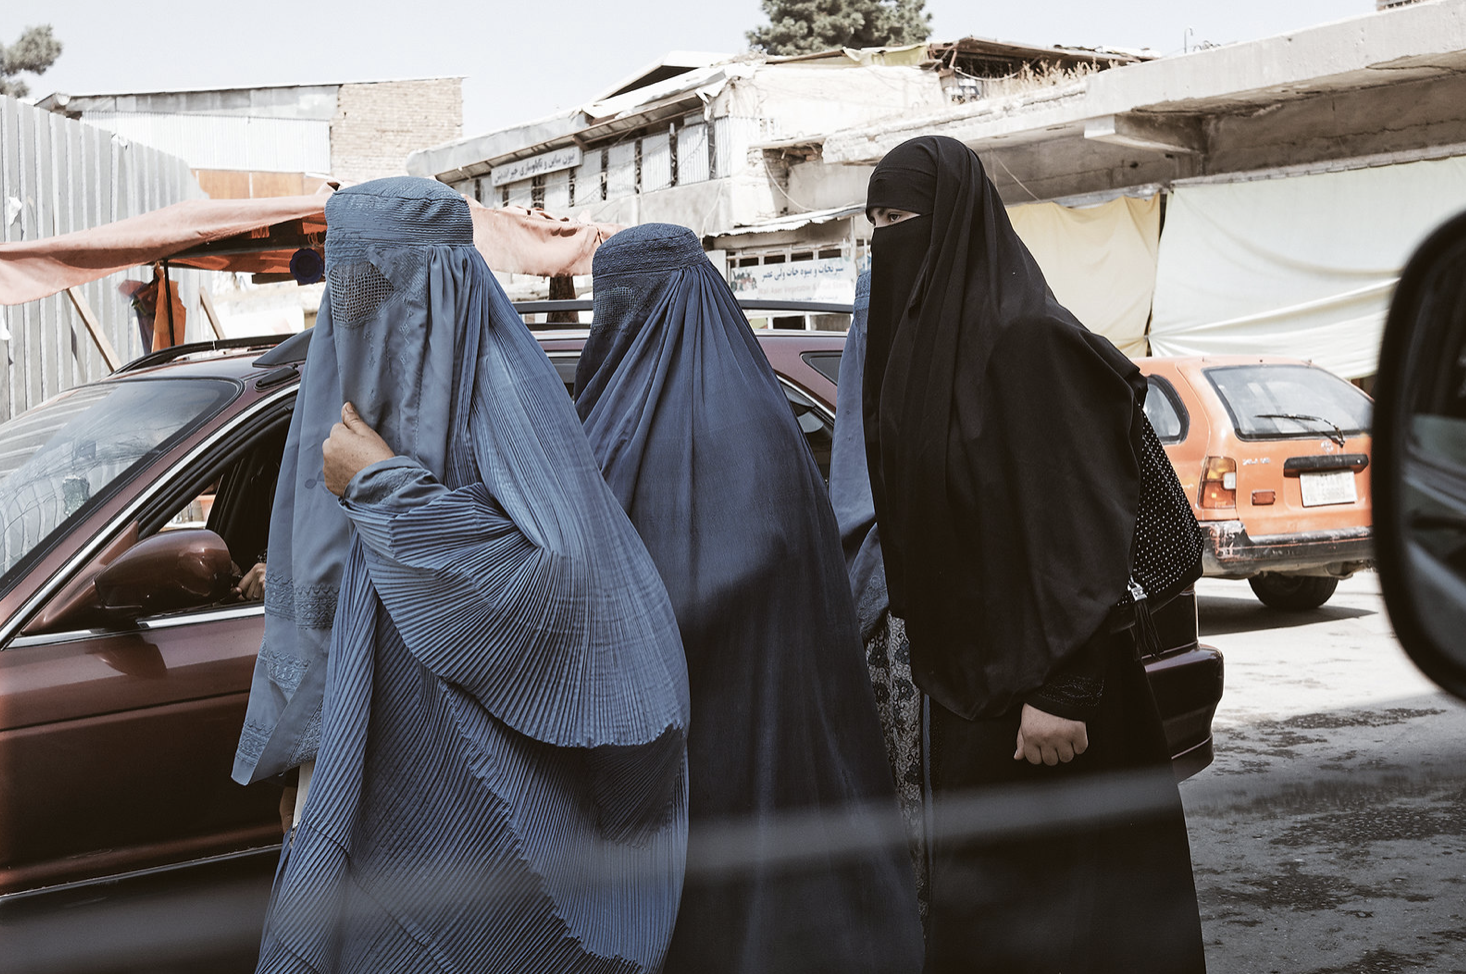 Afghan women wearing burkas on a street in the capital Kabul, January 19, 2014 (Photo by lynnstarbucks) Creative Commons license via Flickr